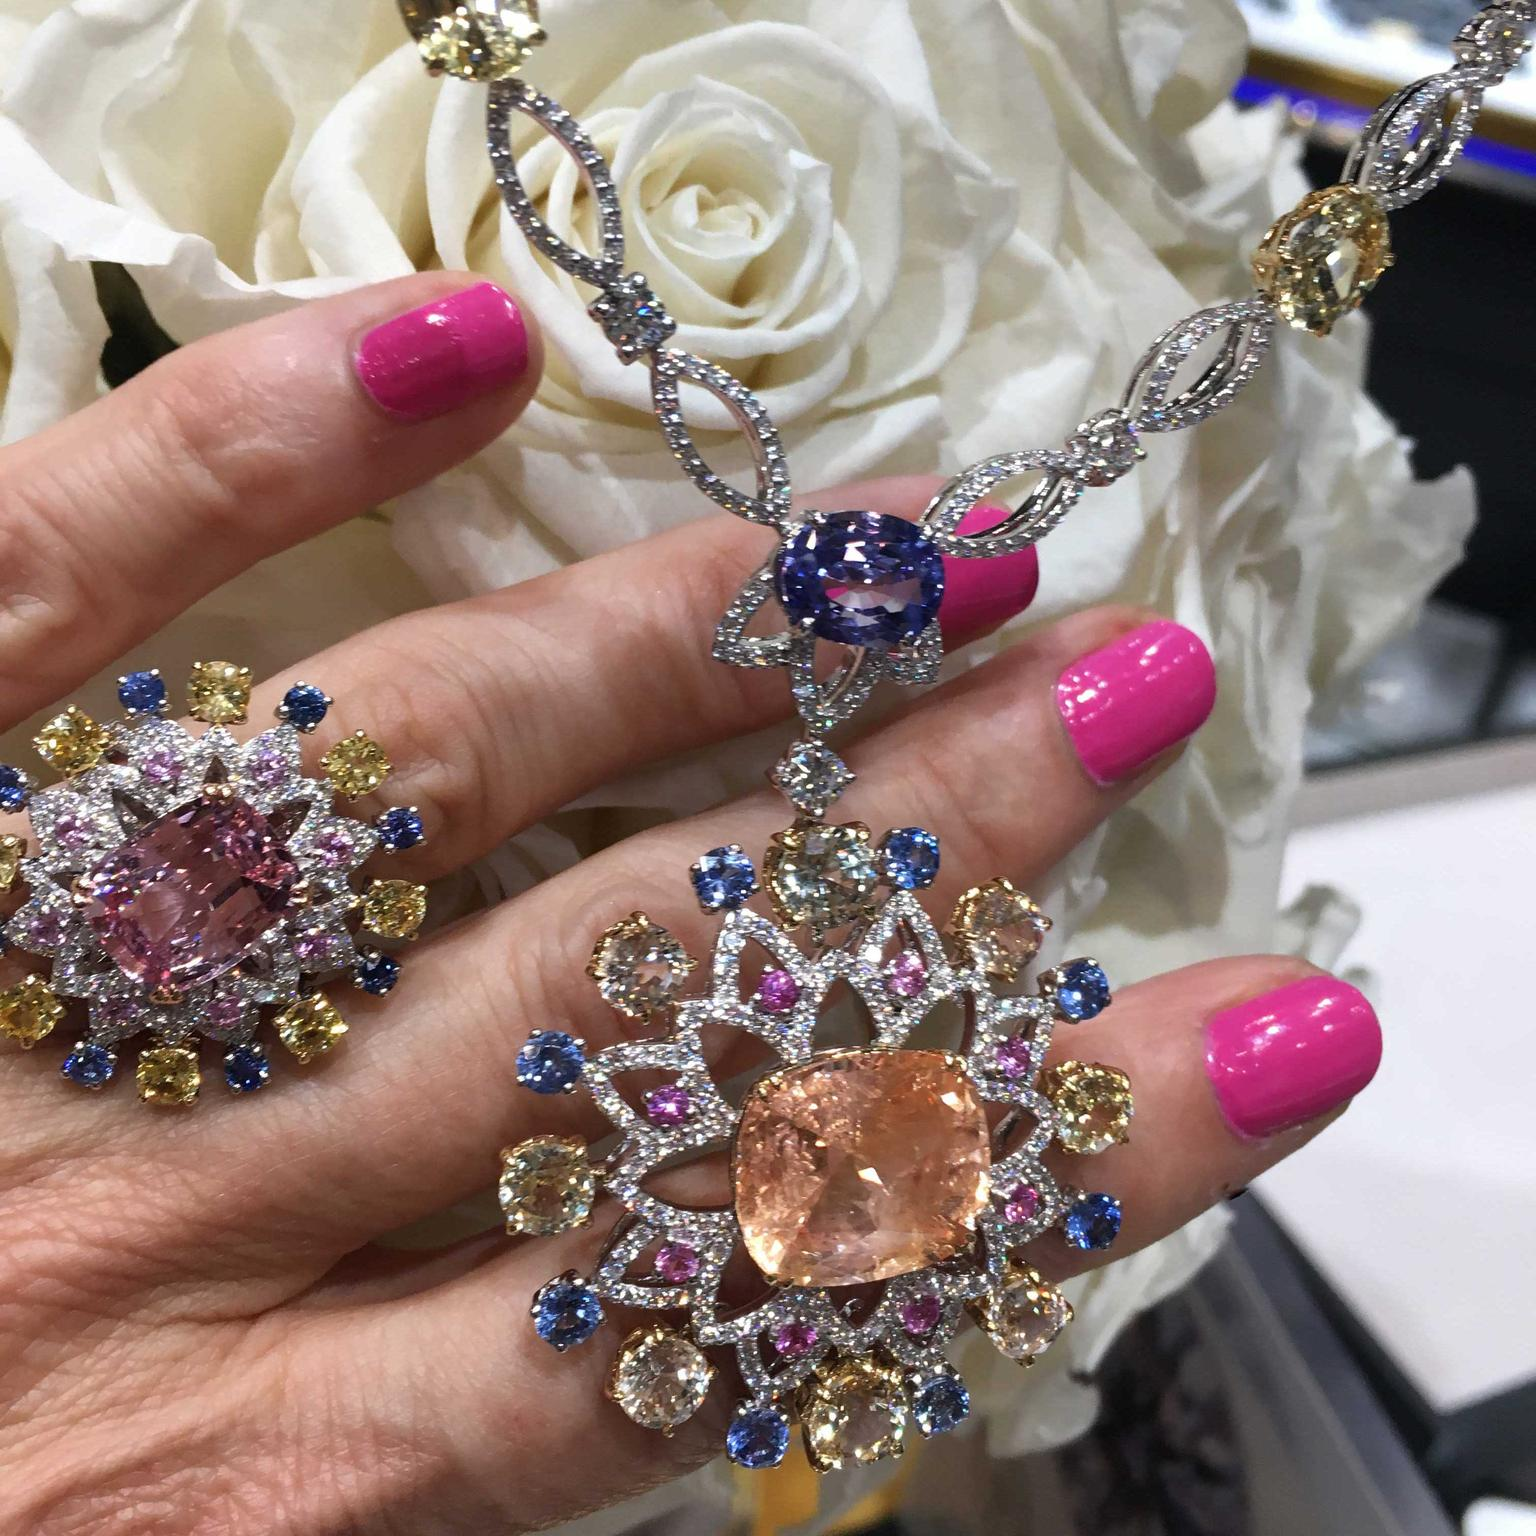 Mouawad presented two spectacular padparadscha sapphires at DJWE 2018 that show to perfection the two spectrums of this very rare sapphire.